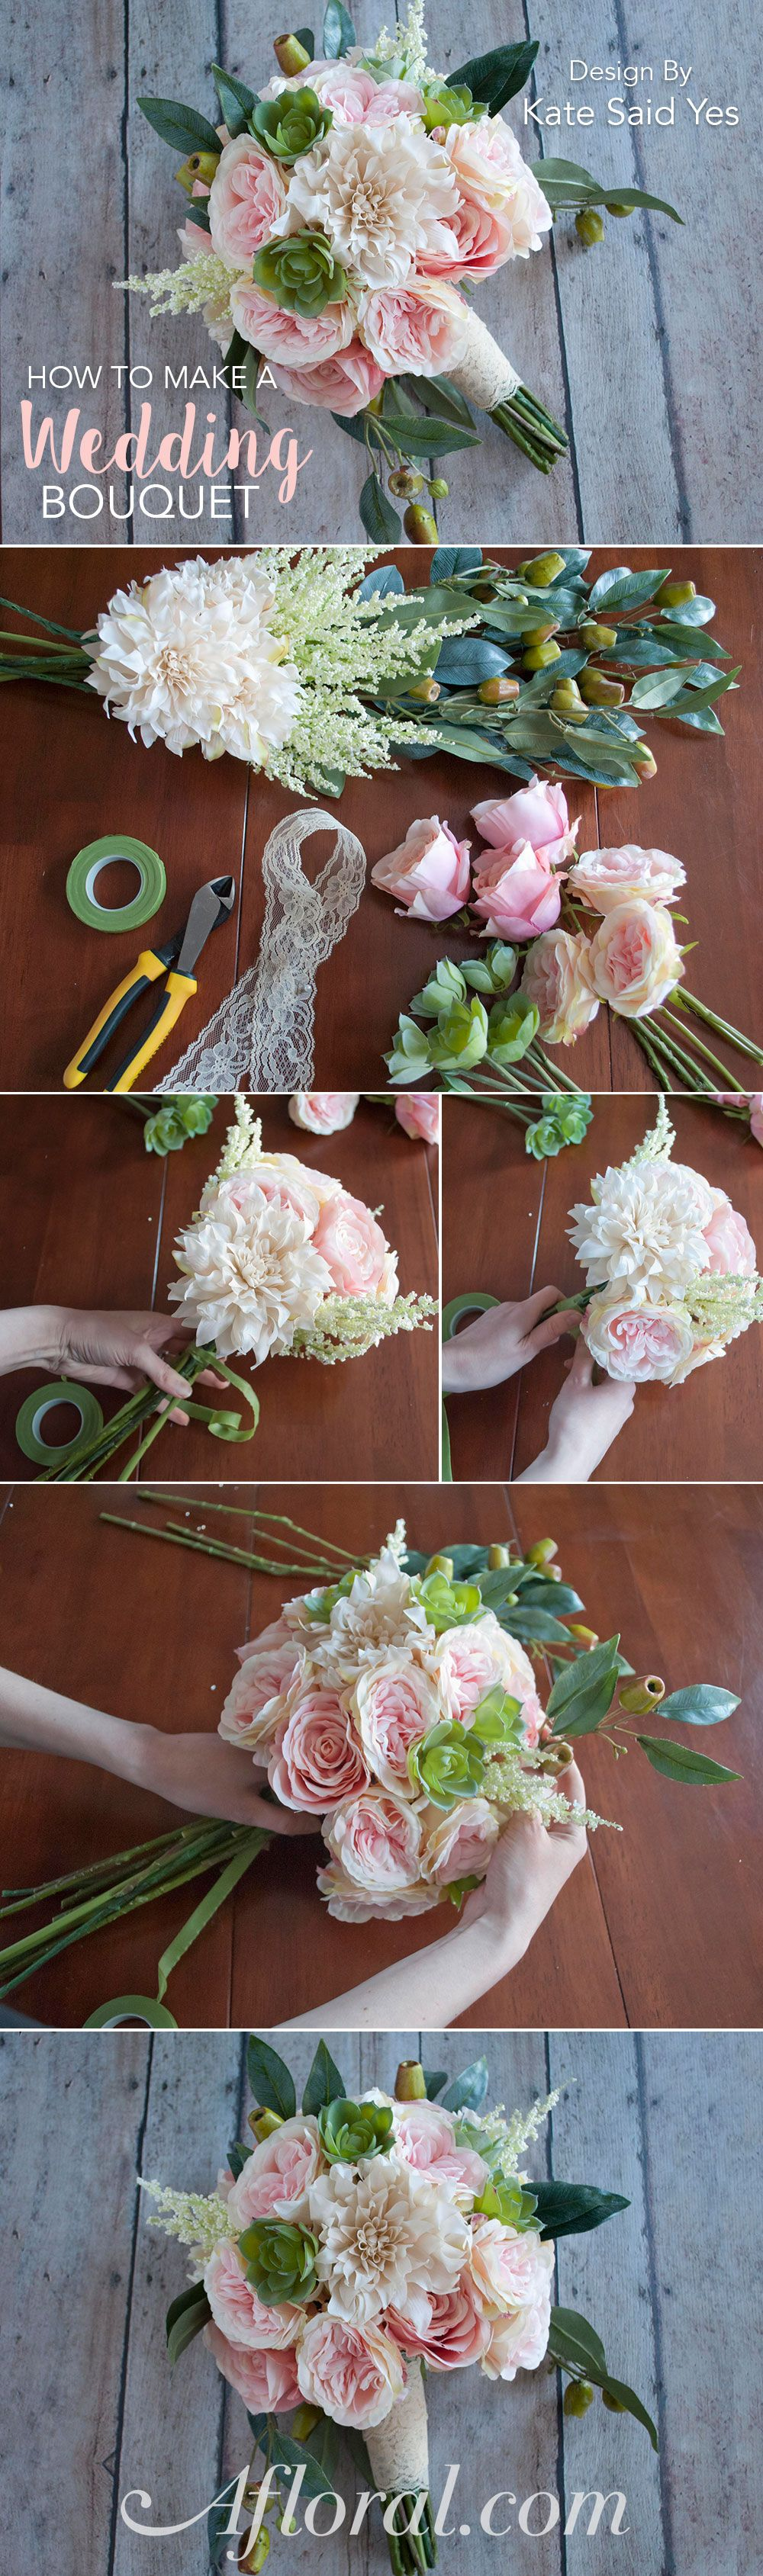 How to make a wedding bouquet dont mind if i do wedding flower arrangements with candles flowers are never set on the altar itself they arent the only thing that look beautiful submerged in water mightylinksfo